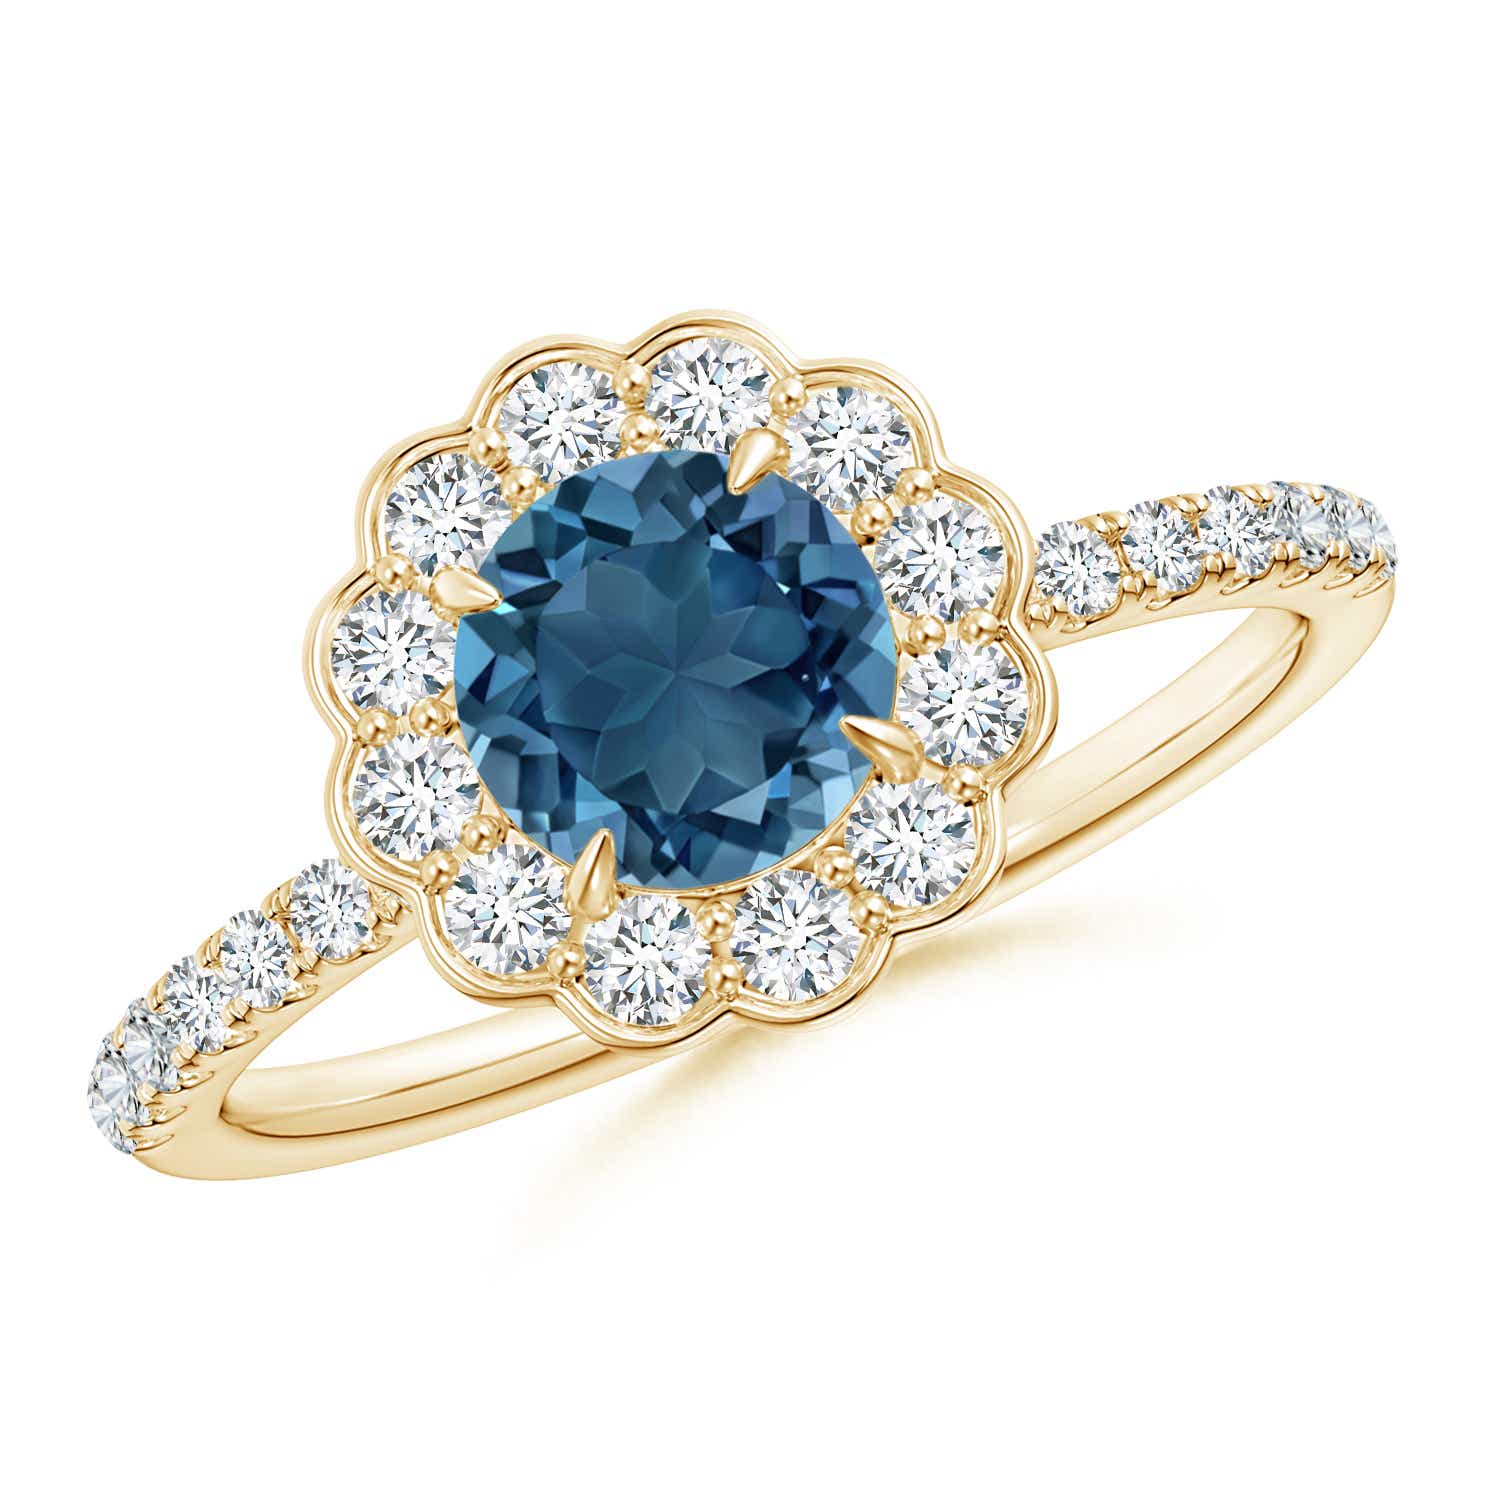 Angara Vintage Style London Blue Topaz Flower Ring with Diamonds jVRXzAm79